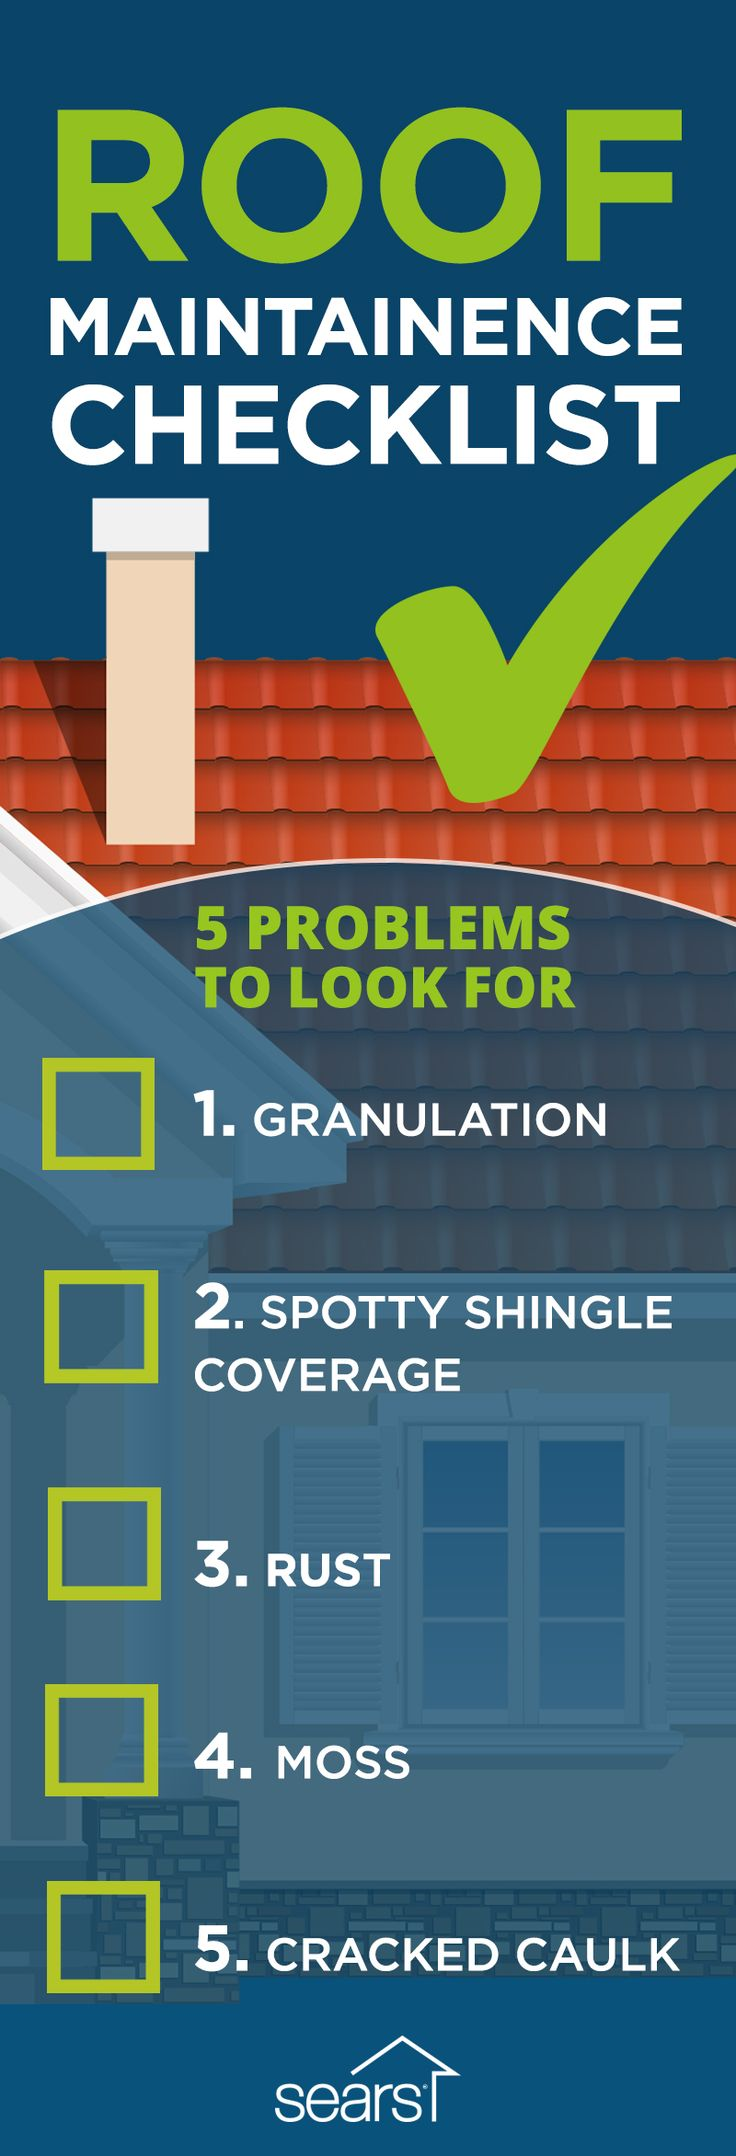 Use this roof maintenance checklist as you walk the perimeter of your home to assess roof damage that could cause major issues down the road. There are a few things you can safely check from the ground below to assess the situation up above. The five big problems to look for include granulation, spotty shingle coverage, rust, moss and cracked caulk. Visit the Sears Home Services blog to learn more about how to spot roofing problems.